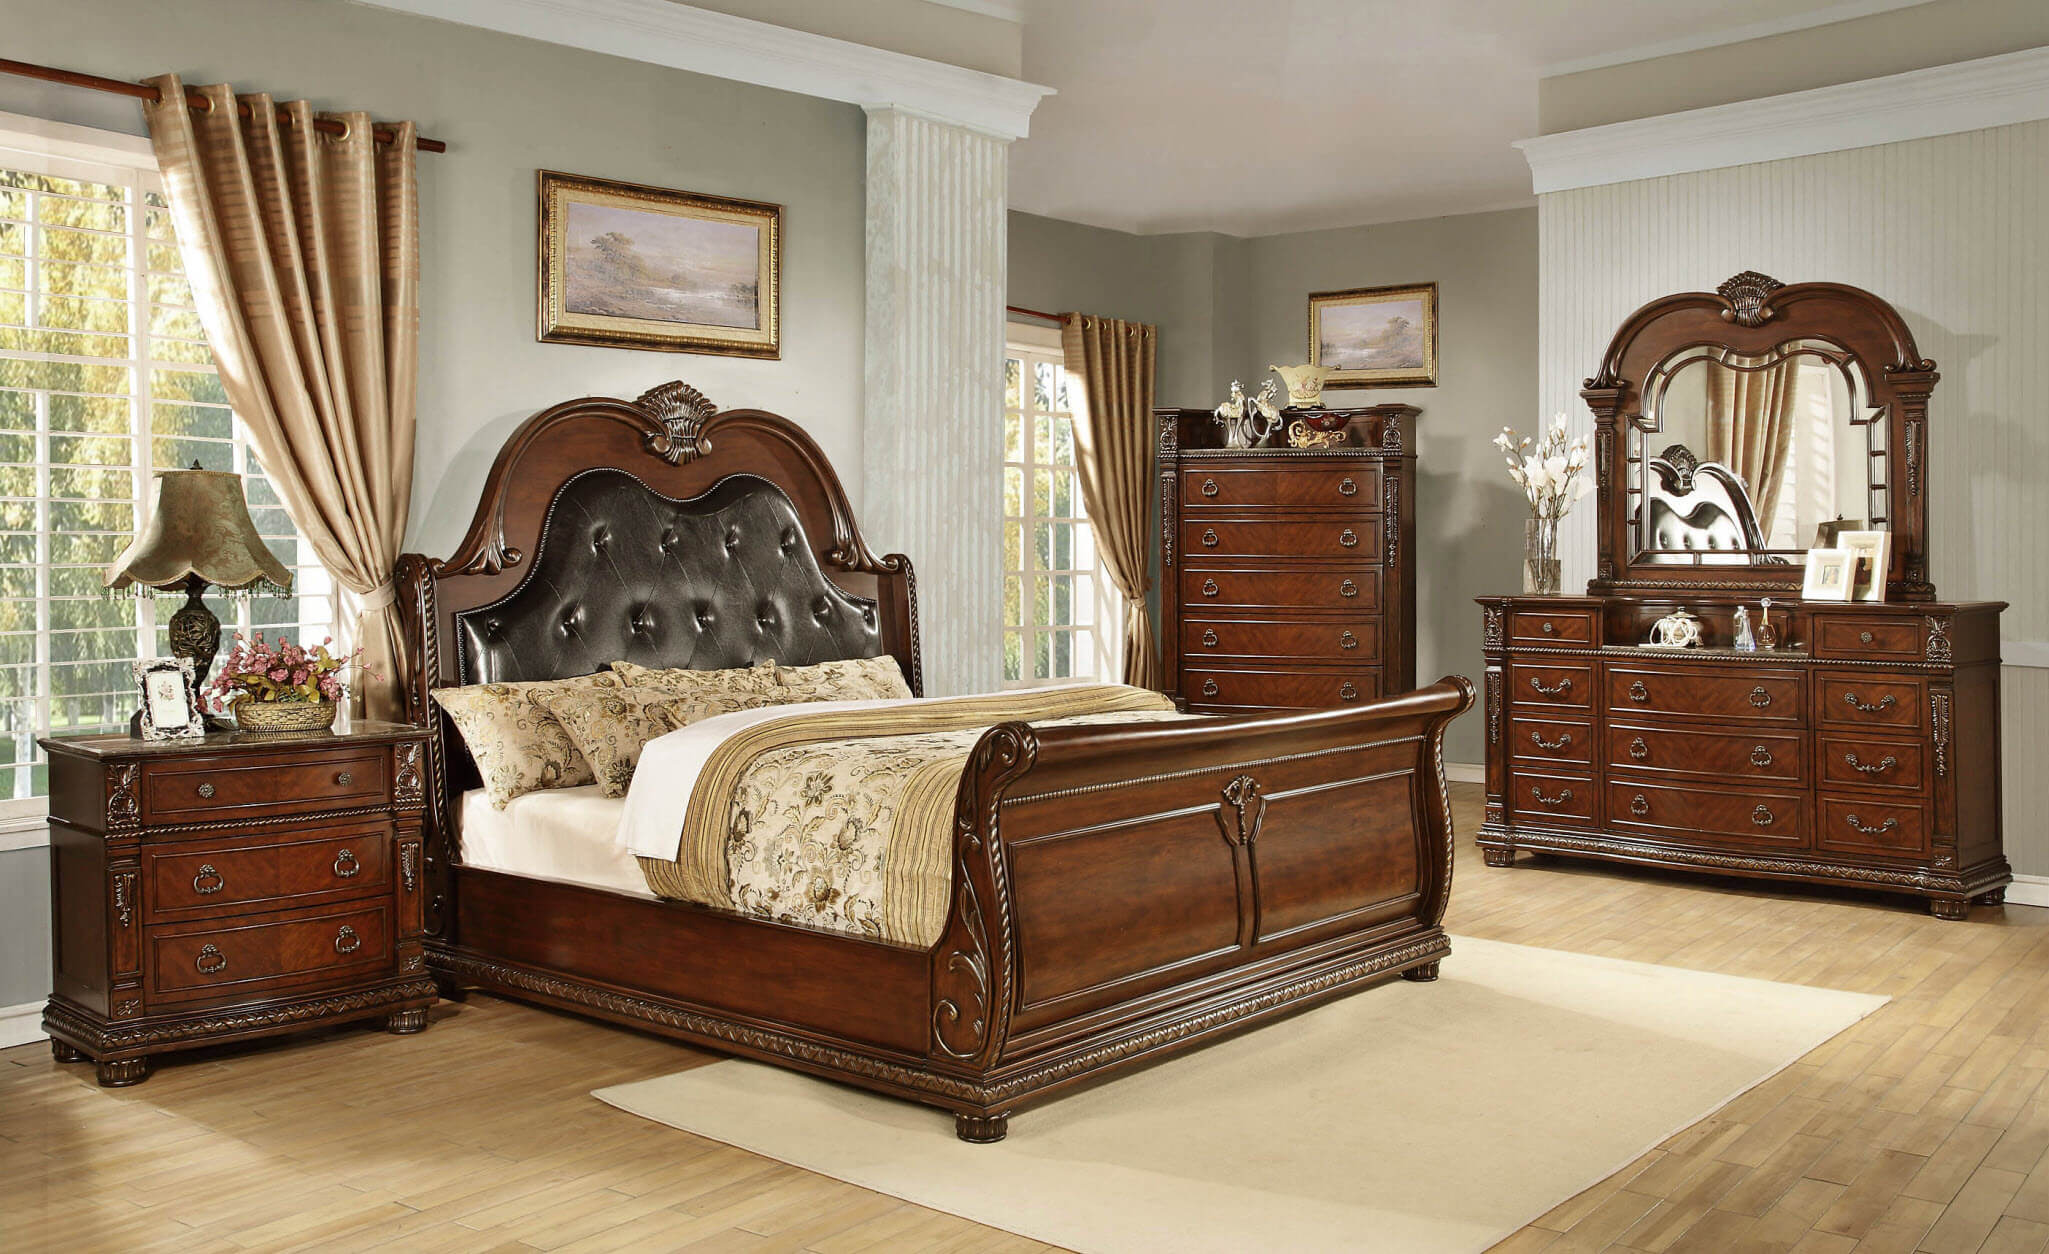 bedroom furniture sets with marble tops photo - 2